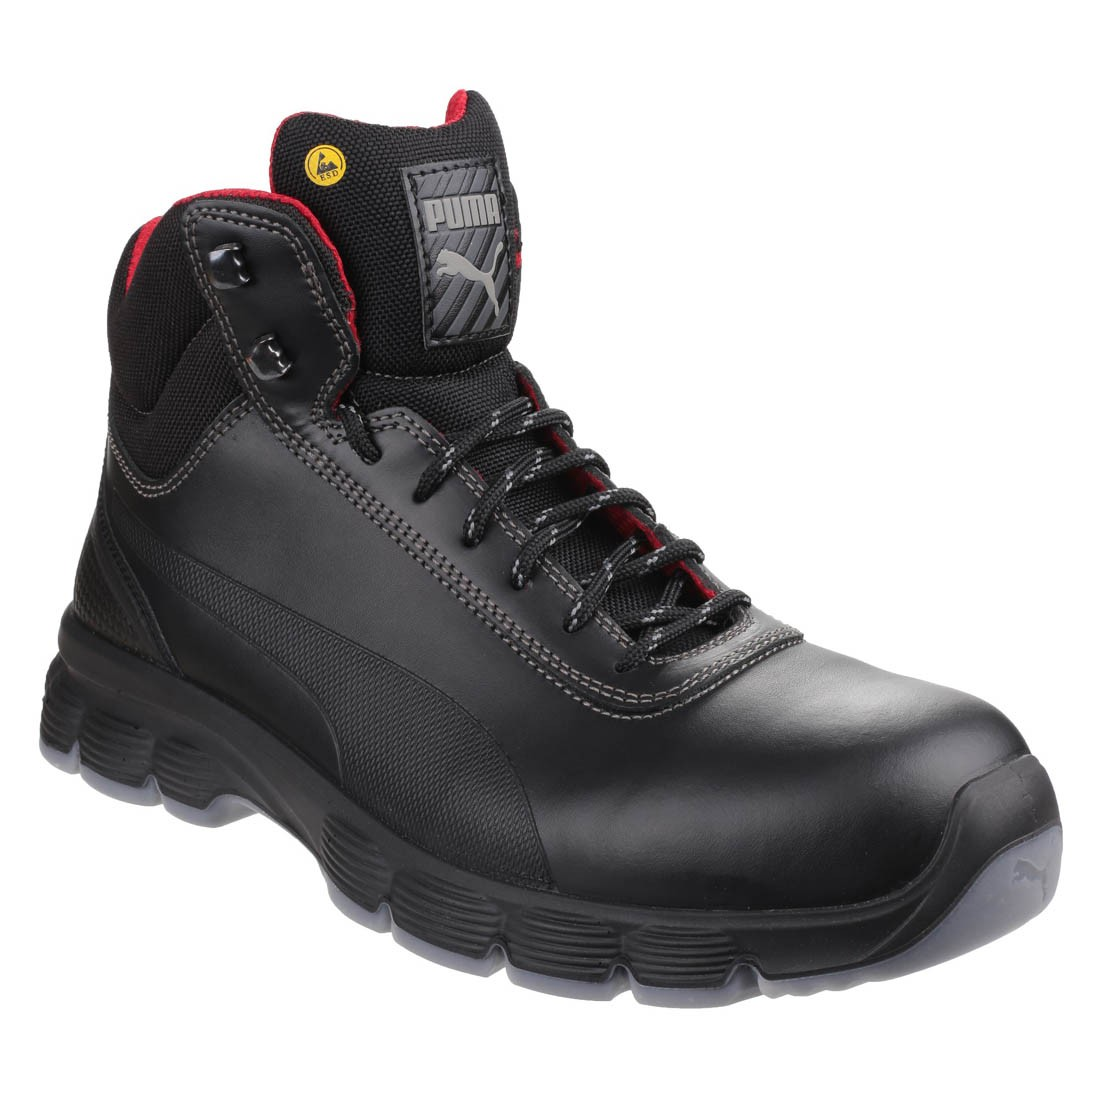 Puma Safety Pioneer S3 Esd Smooth Black Leather Mens Hiker